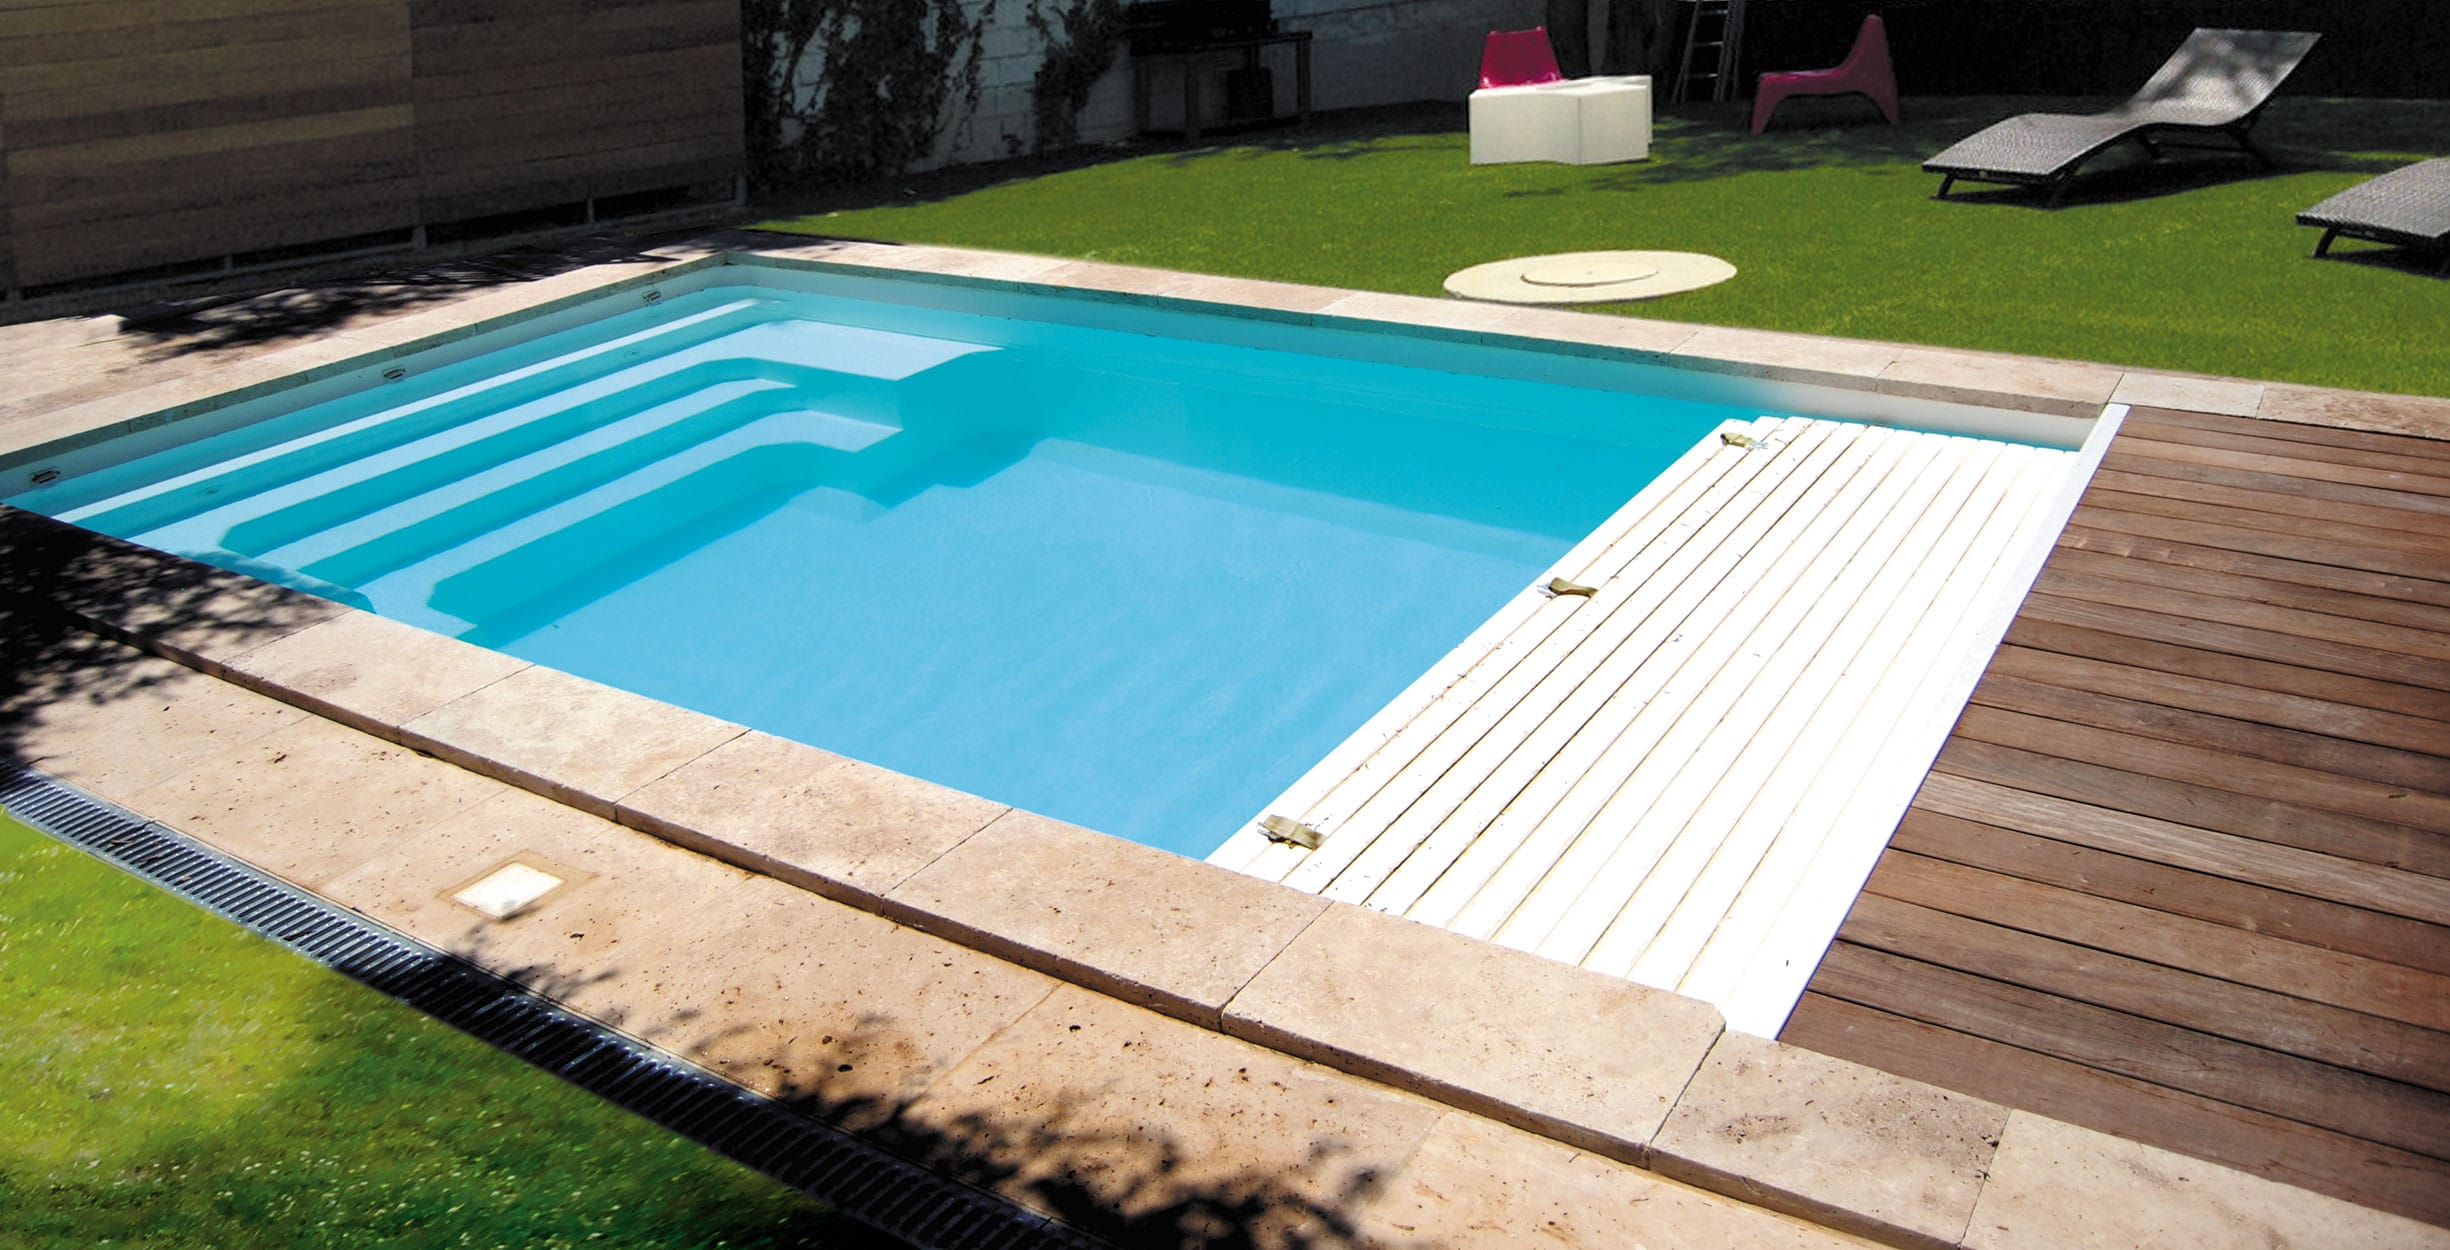 volet-immerge-secure-bassin Abris piscine